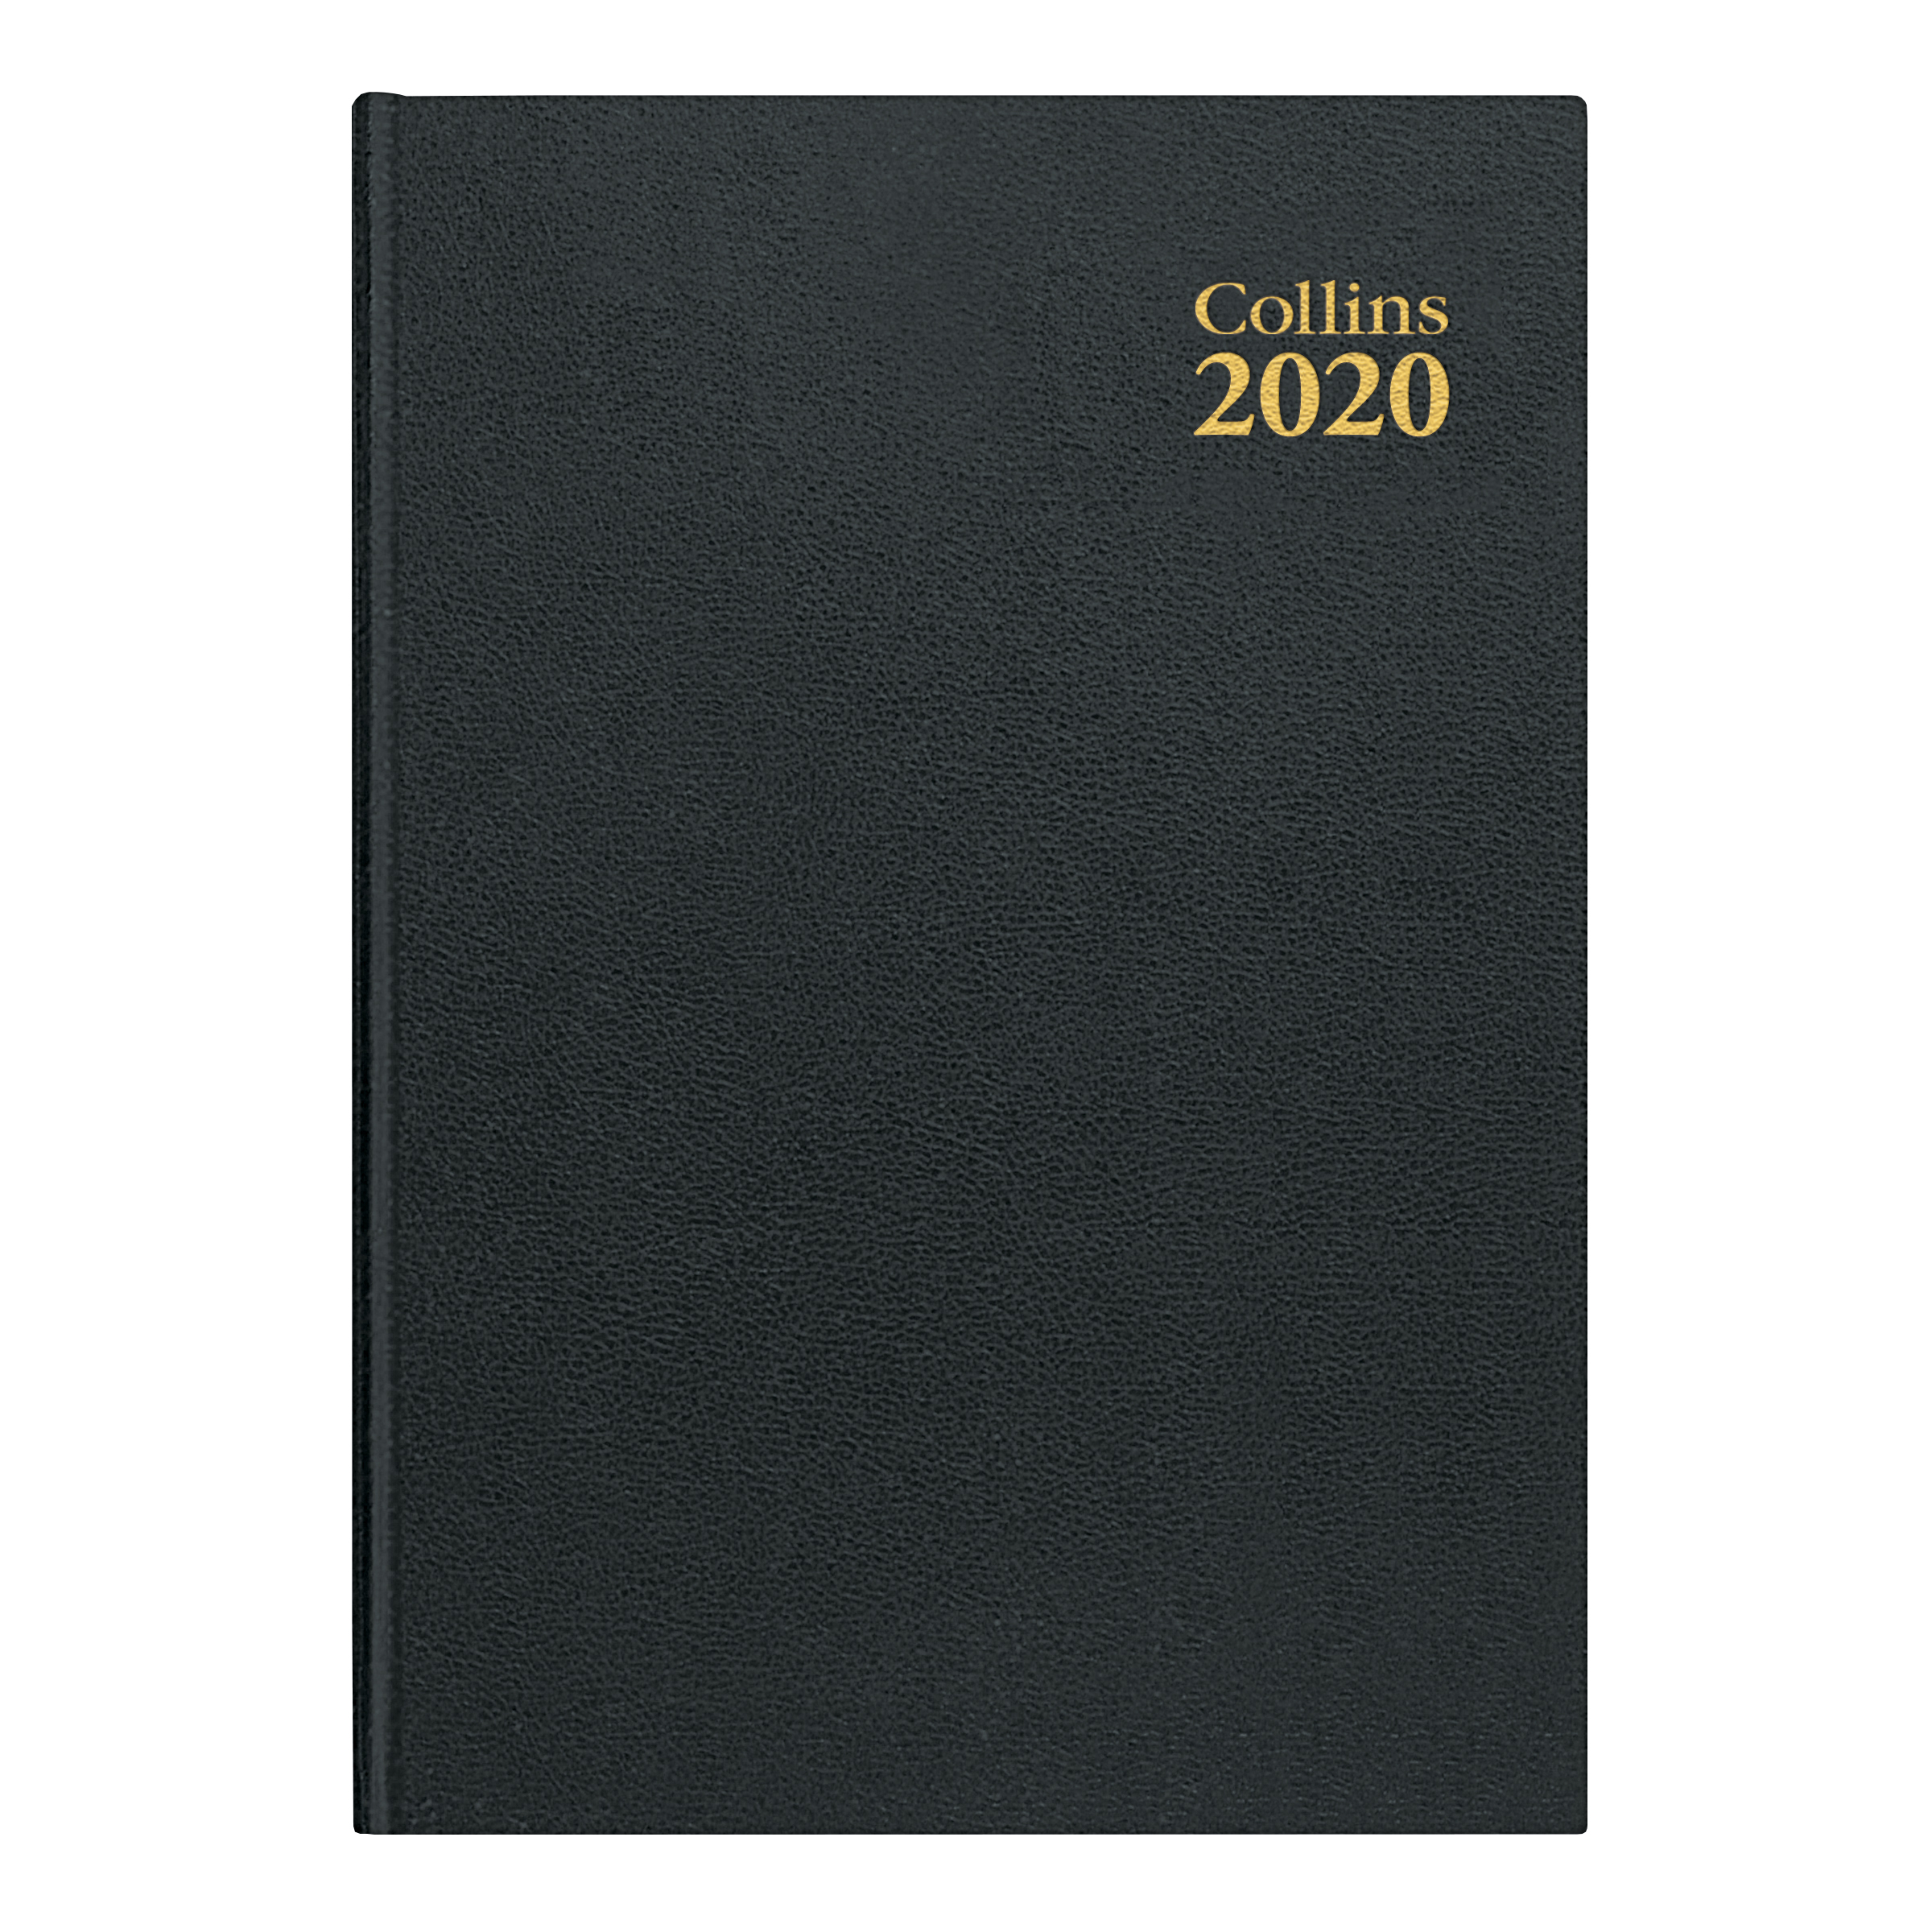 Collins 2020 Desk Diary Week to View Sewn Binding A4 297x210mm Black Ref 40 Blk 2020